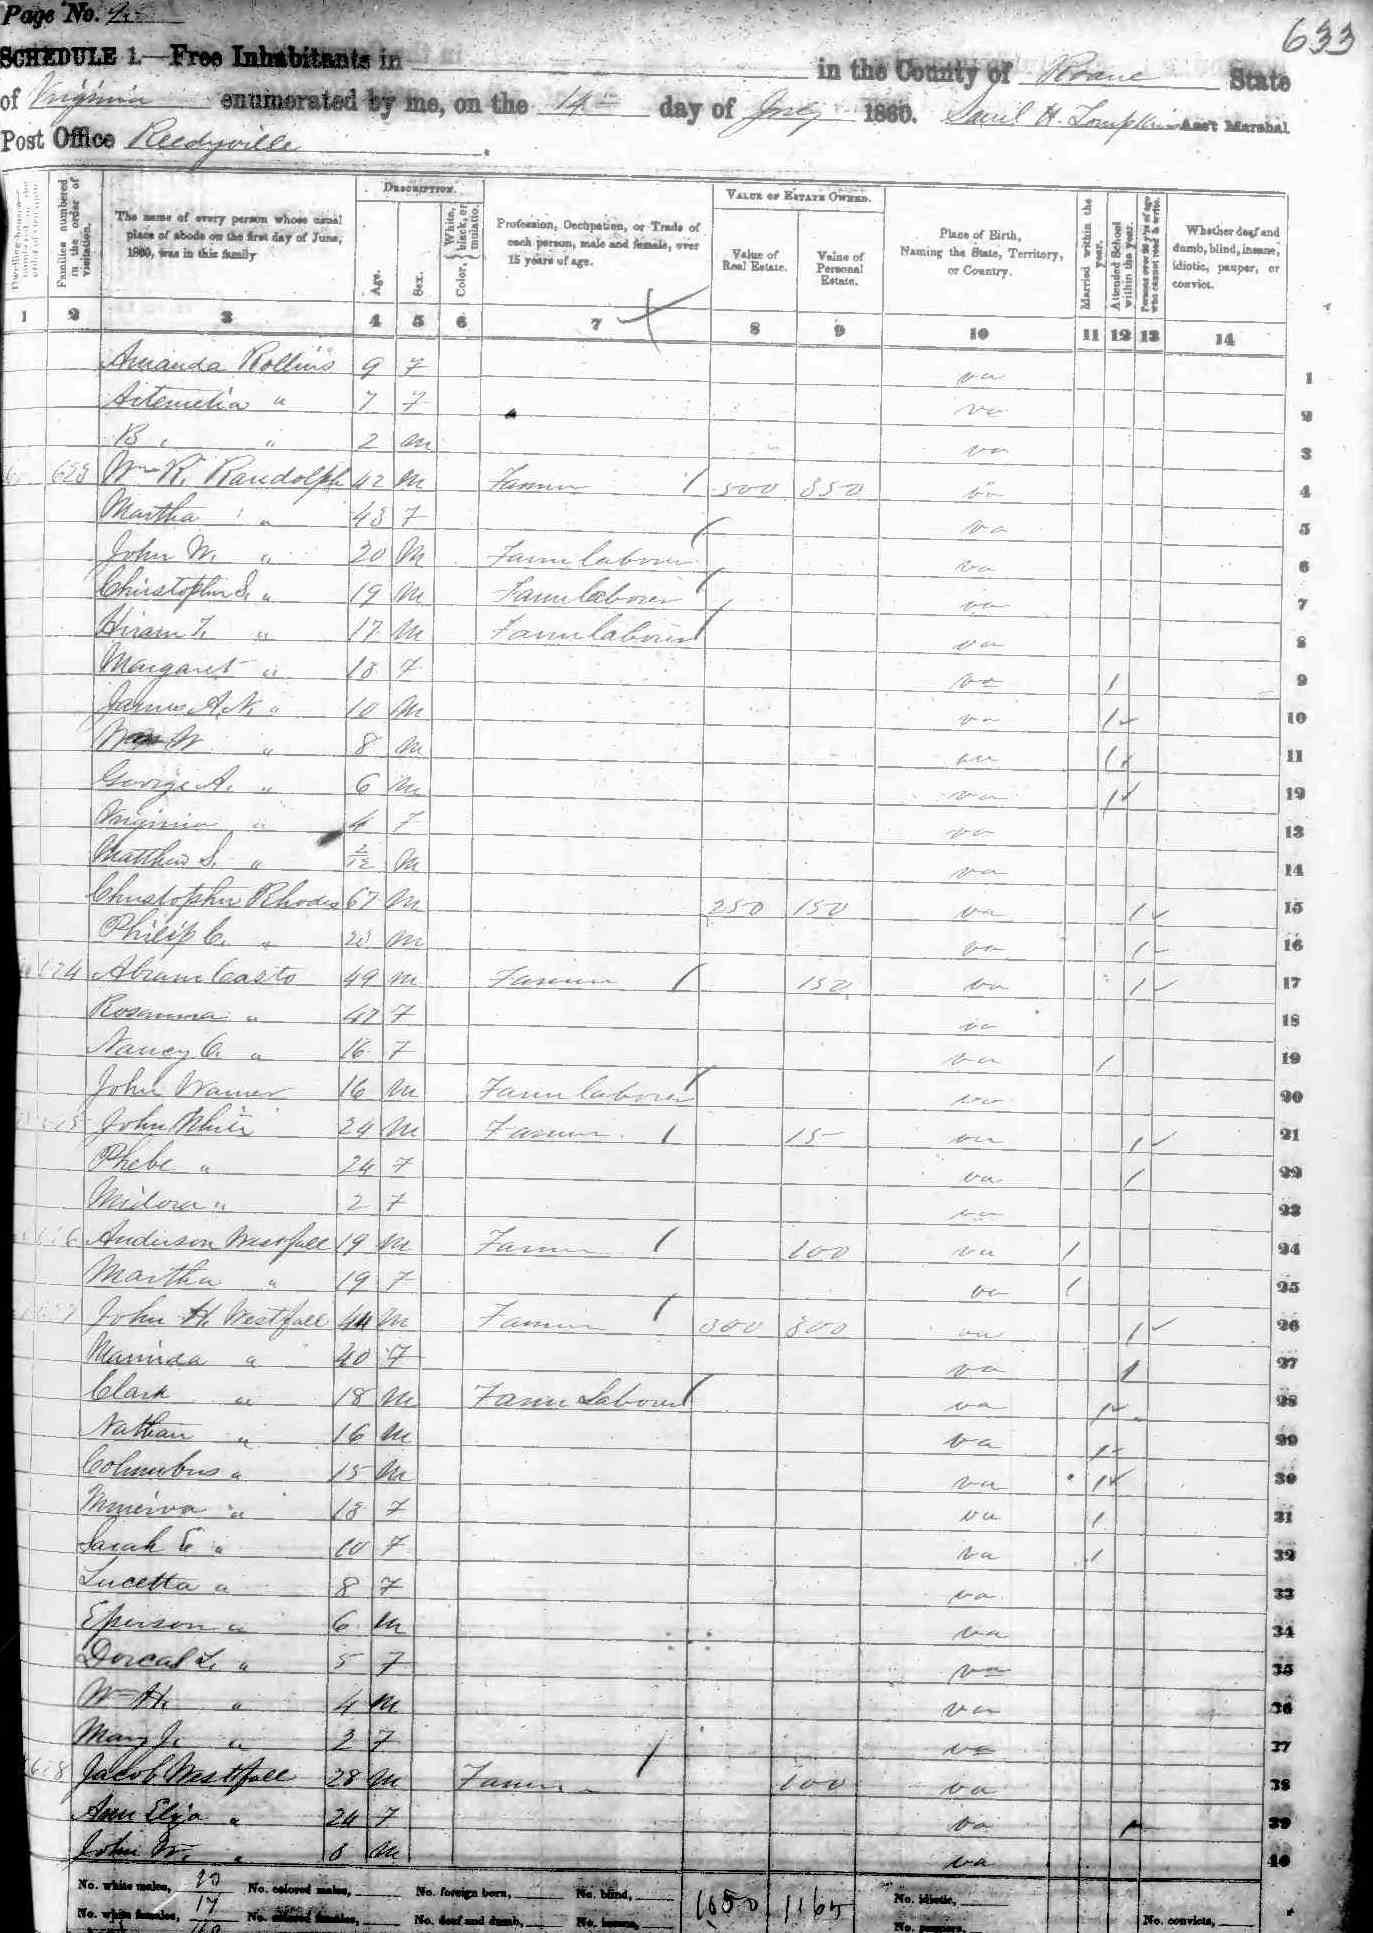 Roane County WV 1860 census images US Data Repository – Insolvency Worksheet